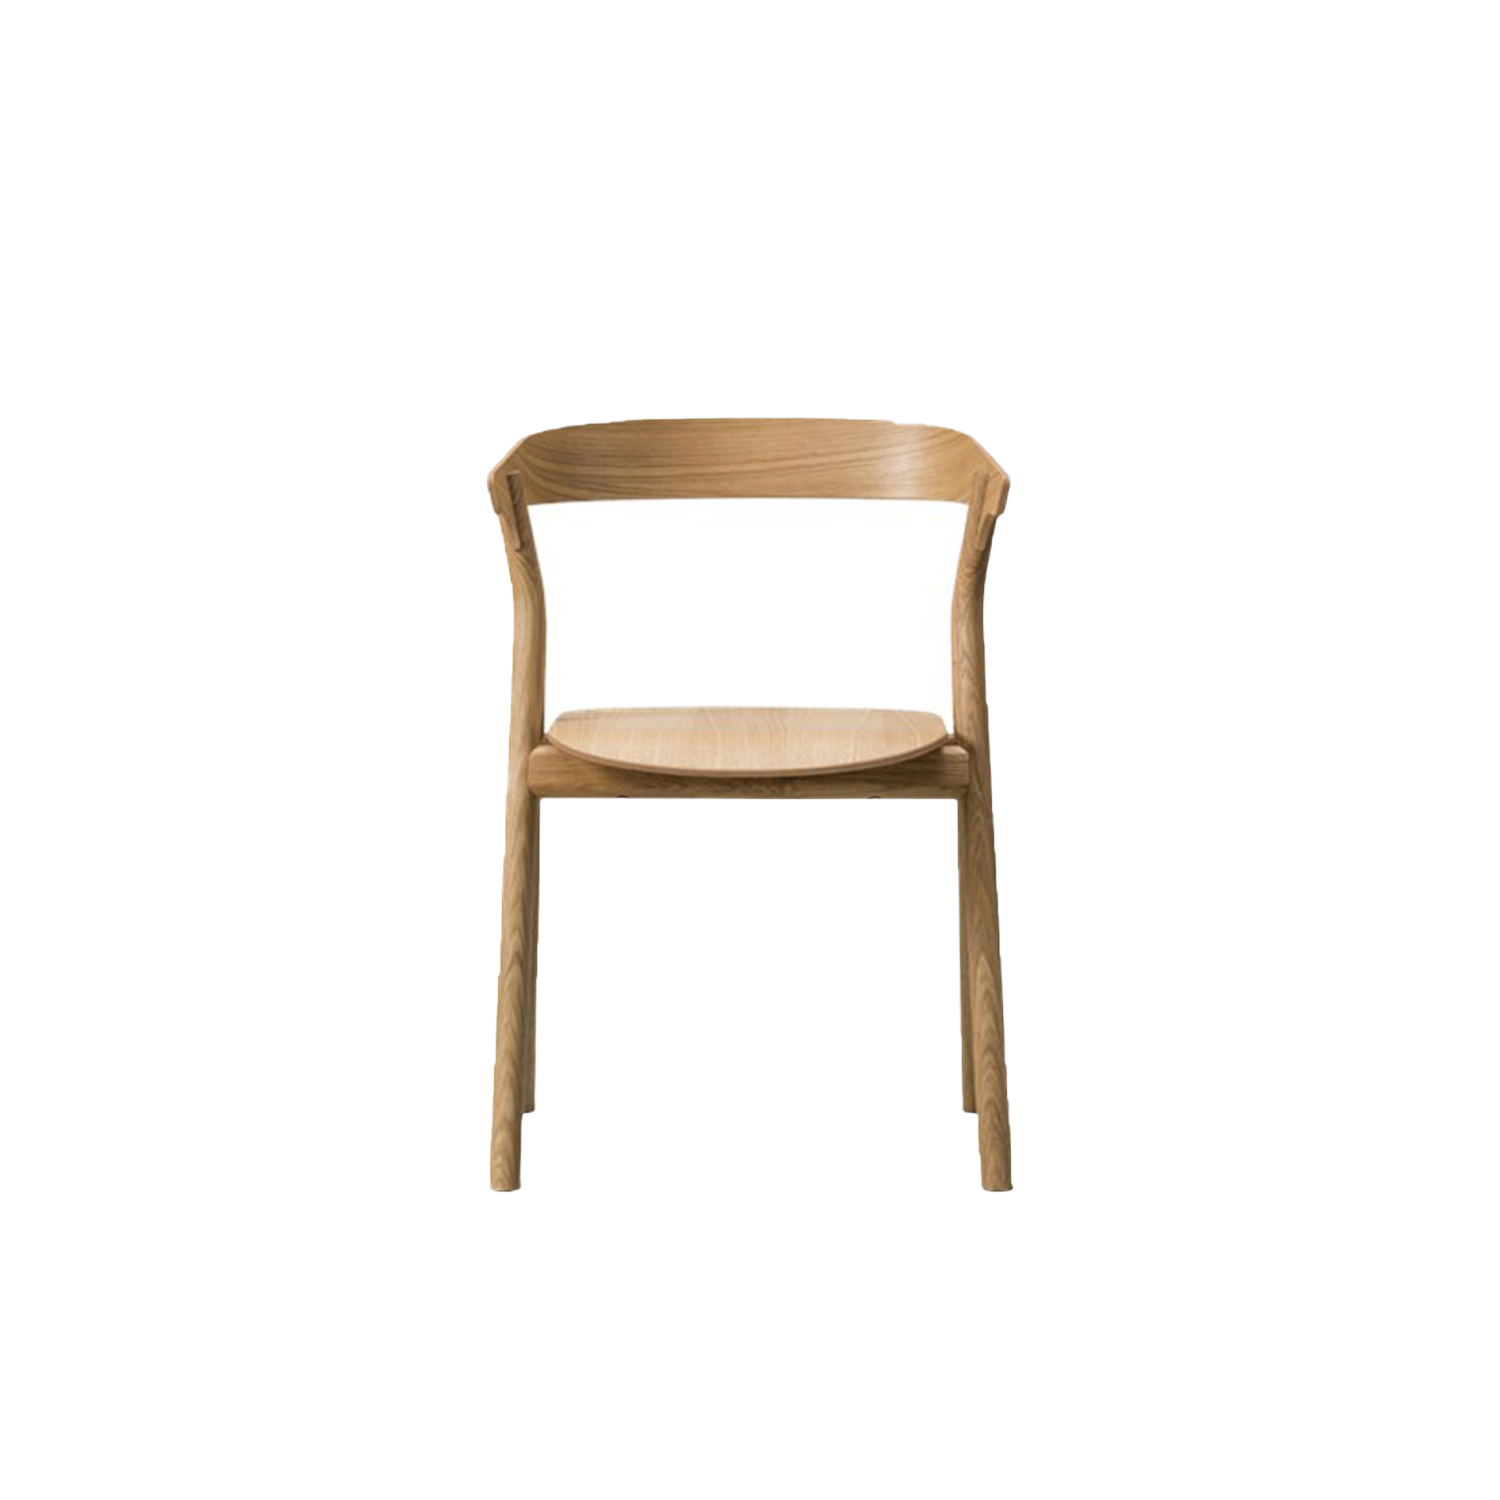 """YKSI Chair  - Yksi is available with a comfortable seat upholstery and two chairs can be stacked for compact storage making it a perfect choice from residential homes and professional workspaces to cafes and restaurants. Yksi means """"one"""" in Finnish, reflecting several elements incorporated into a singular design, signalling classic elegance with a modern twist. The Yksi Chair has two pairs of legs that unite in an upside down Y-shaped base, as a focal point of support for the seat. Featuring a curved backrest that looks as if it's hovering above the seat. The structure makes the chair surprisingly light – both visually and in terms of weight. Two chairs can be stacked for compact storage, adding extra appeal for professional work spaces, cafés, restaurants and homes.   The Yksi Stool is its cousin, perfect for bars, retail settings, corporate dining halls and private kitchens.   Together the Yksi Chair and Yksi Stool have a light appearance that belies their strong construction. Sharing the same distinctive Y-shape and crafted in solid oak, they represent a contemporary take on classic woodworking techniques aimed at a modern audience. 